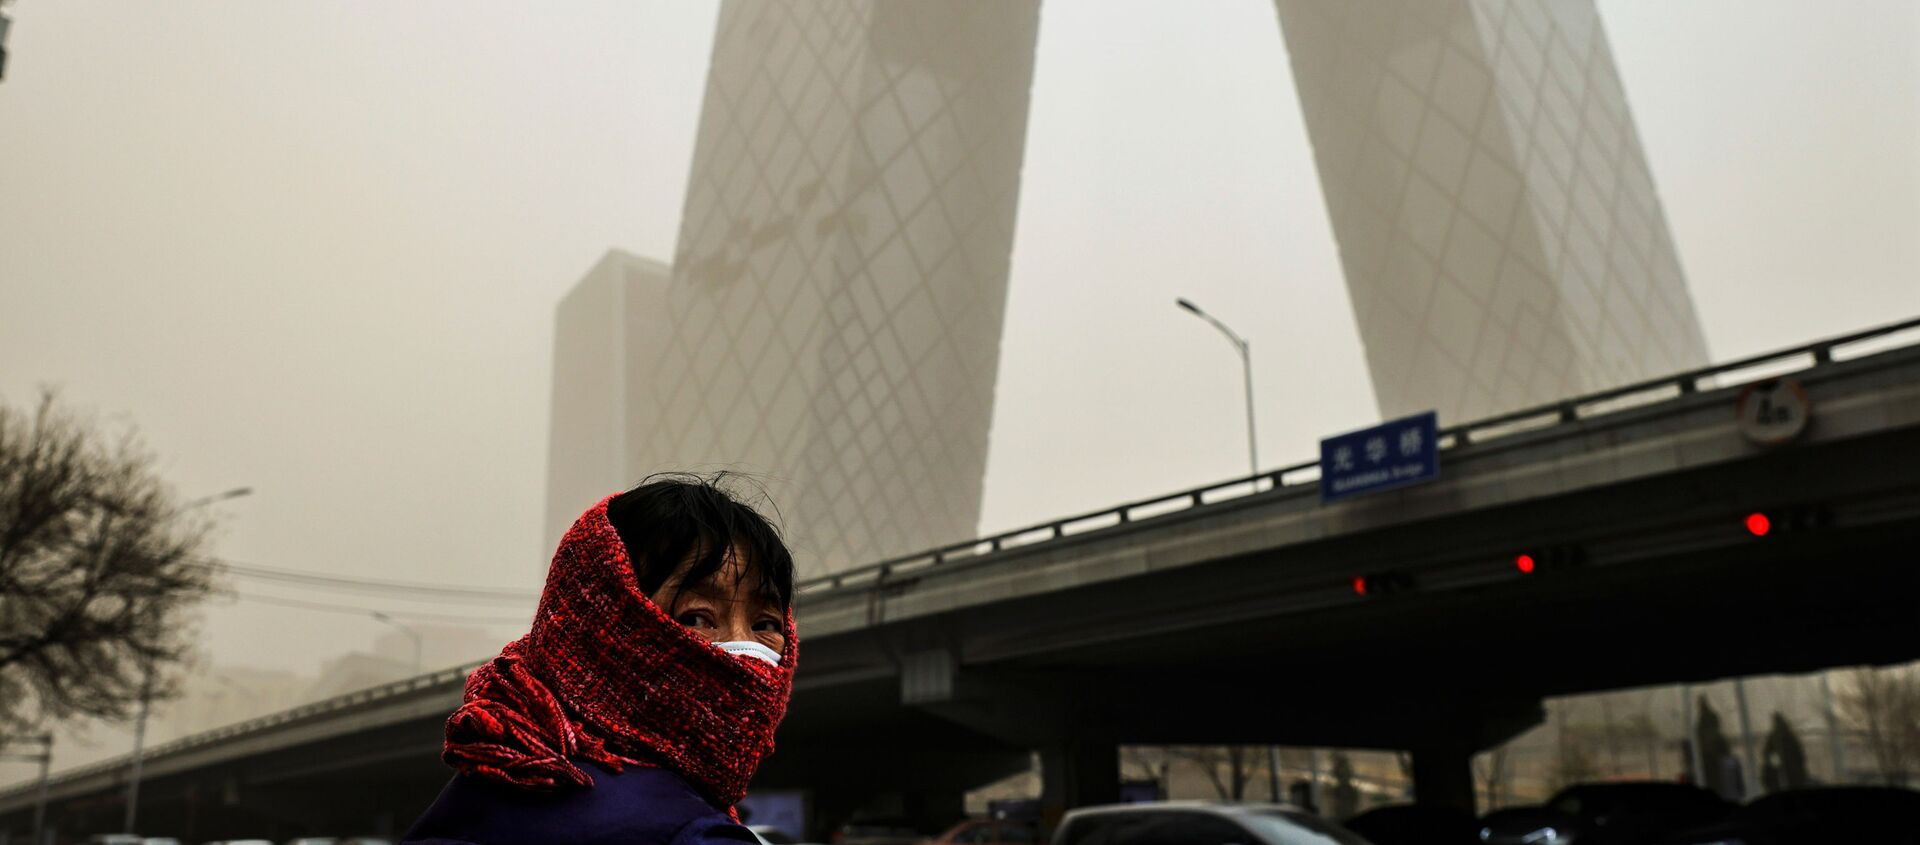 A woman wearing a head covering is seen in front of the headquarters of China's state media broadcaster CCTV that is shrouded in a haze after a sandstorm in the Central Business District of Beijing, China. - Sputnik Italia, 1920, 15.03.2021